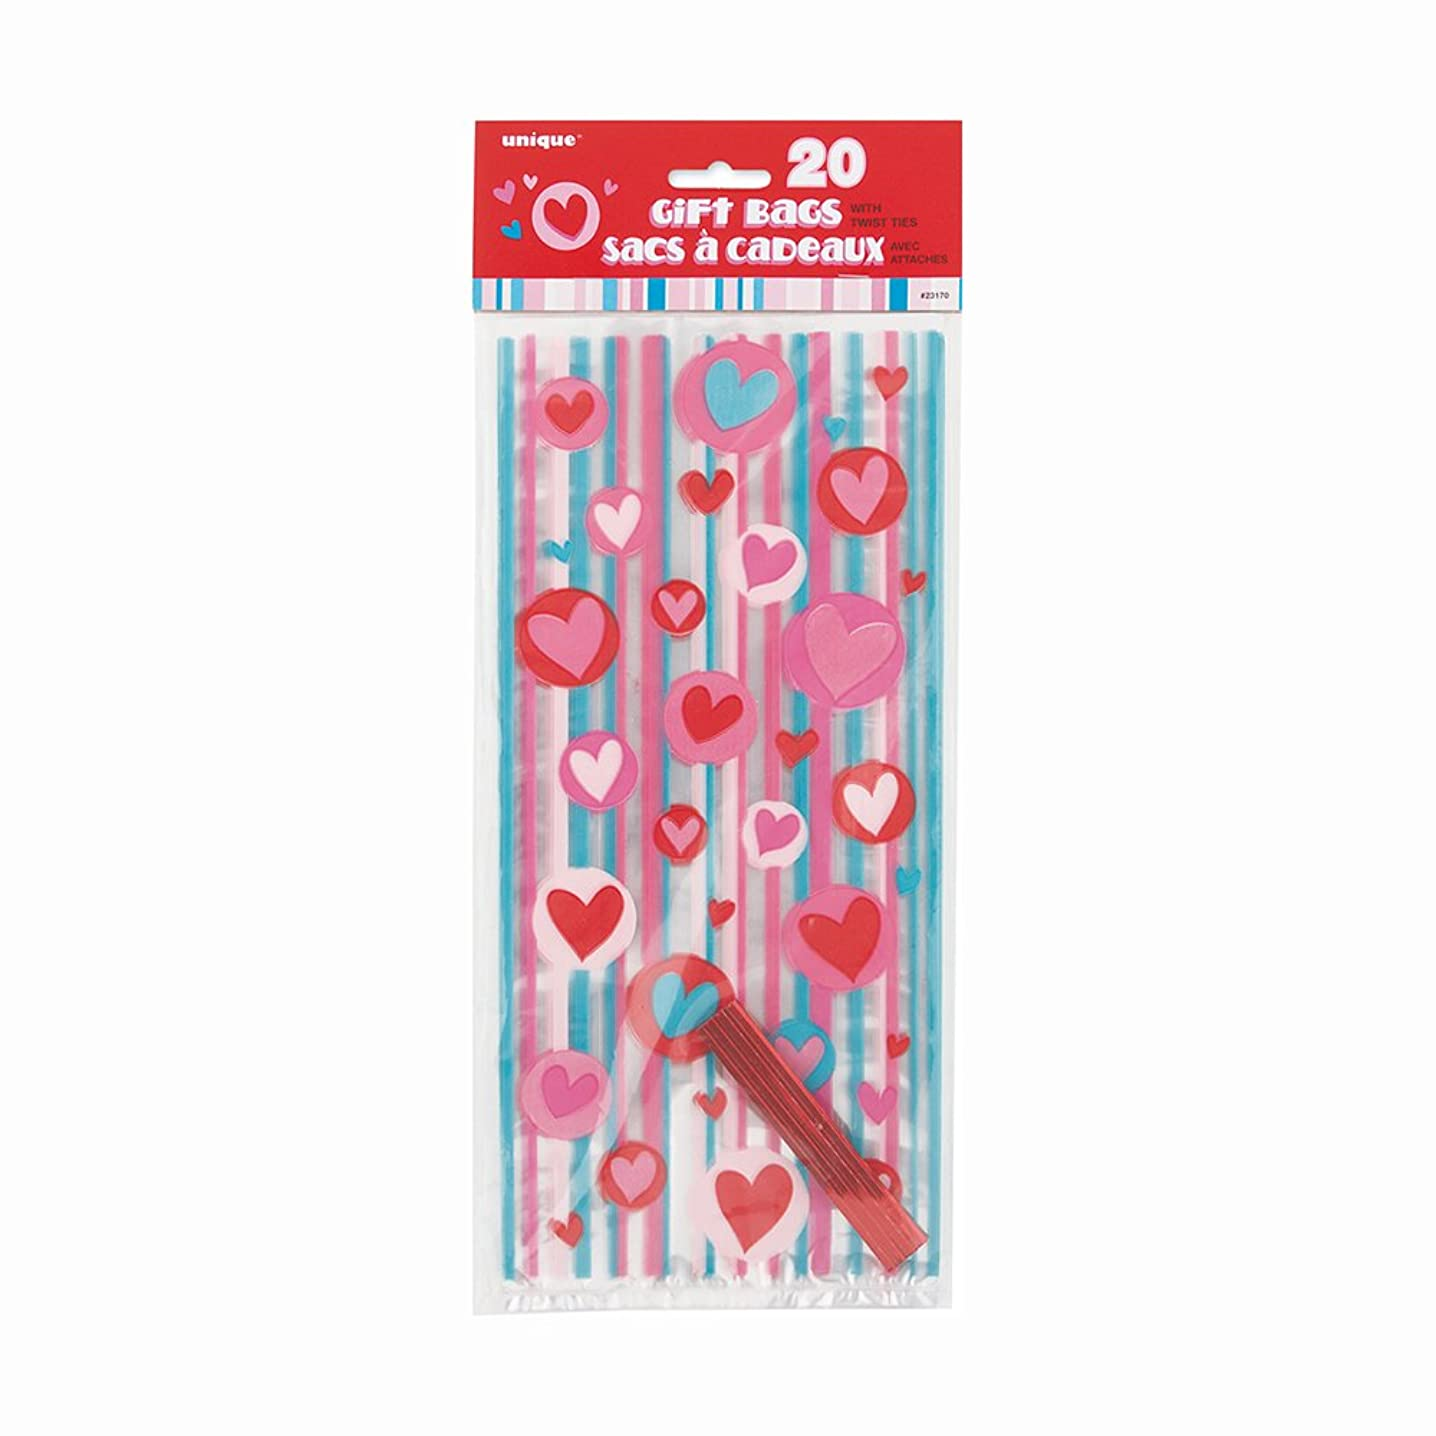 Simply Hearts Valentine's Day Cellophane Bags, 20ct